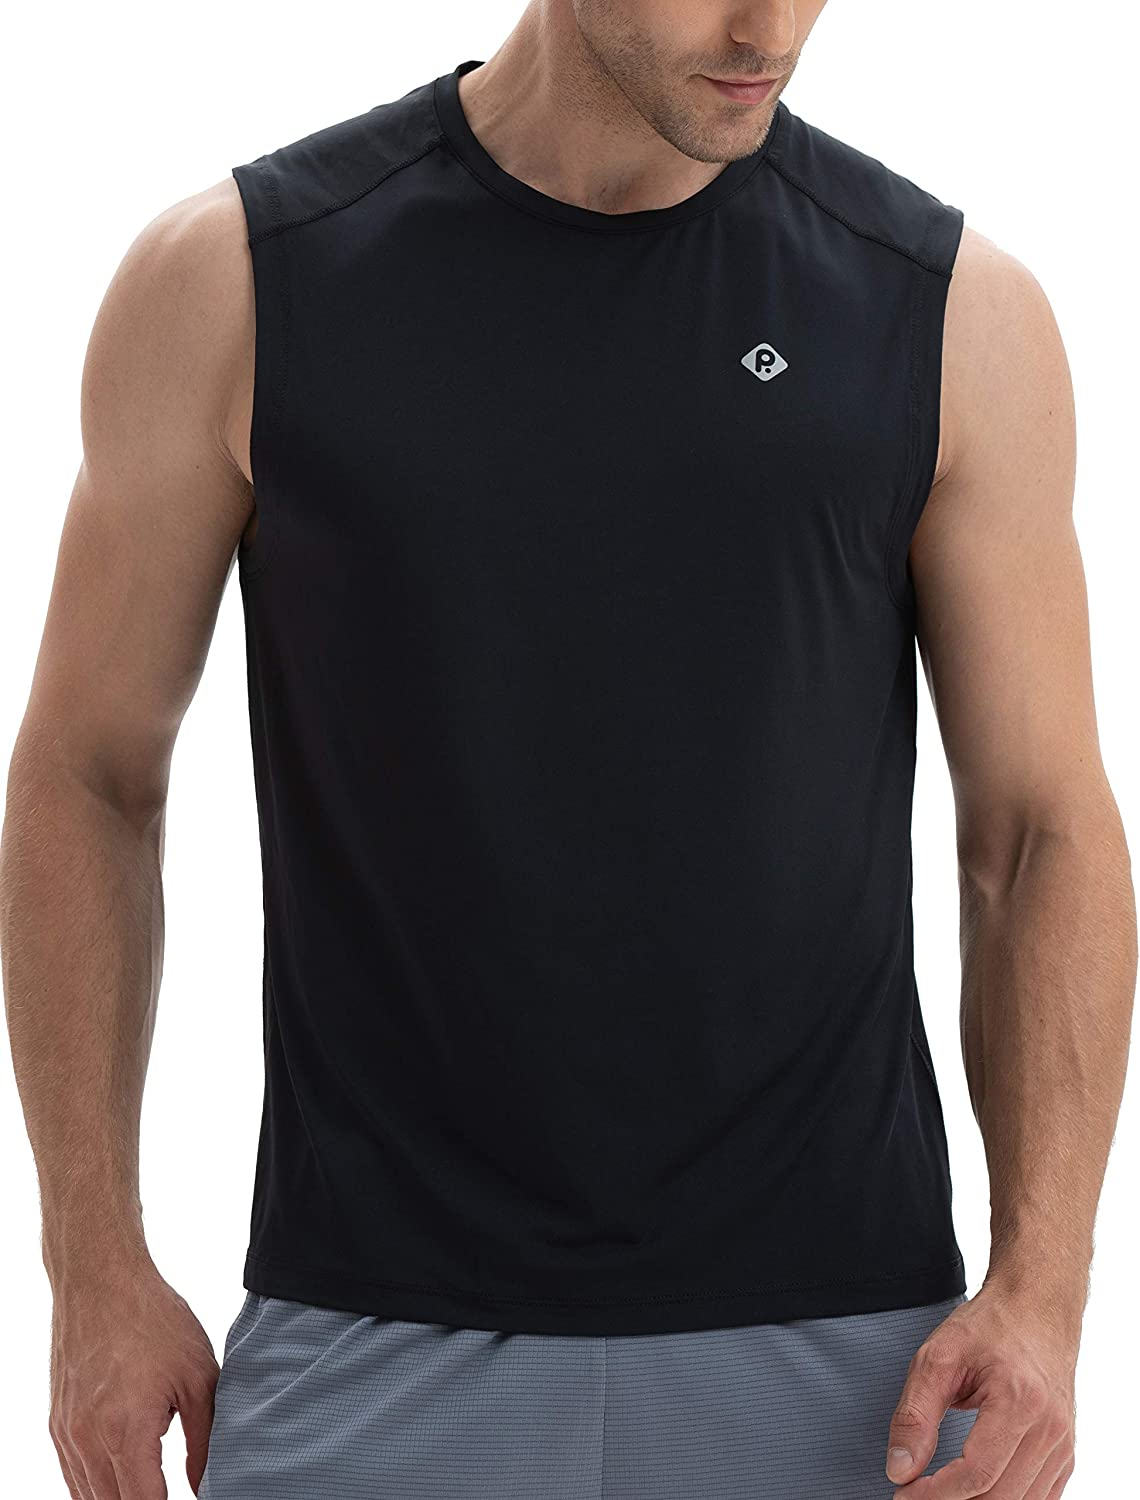 RlaGed Men's Performance Quick Dry Sleeveless Shirt for Athletic Muscle Bodybuilding Workout Sports Tank Tops